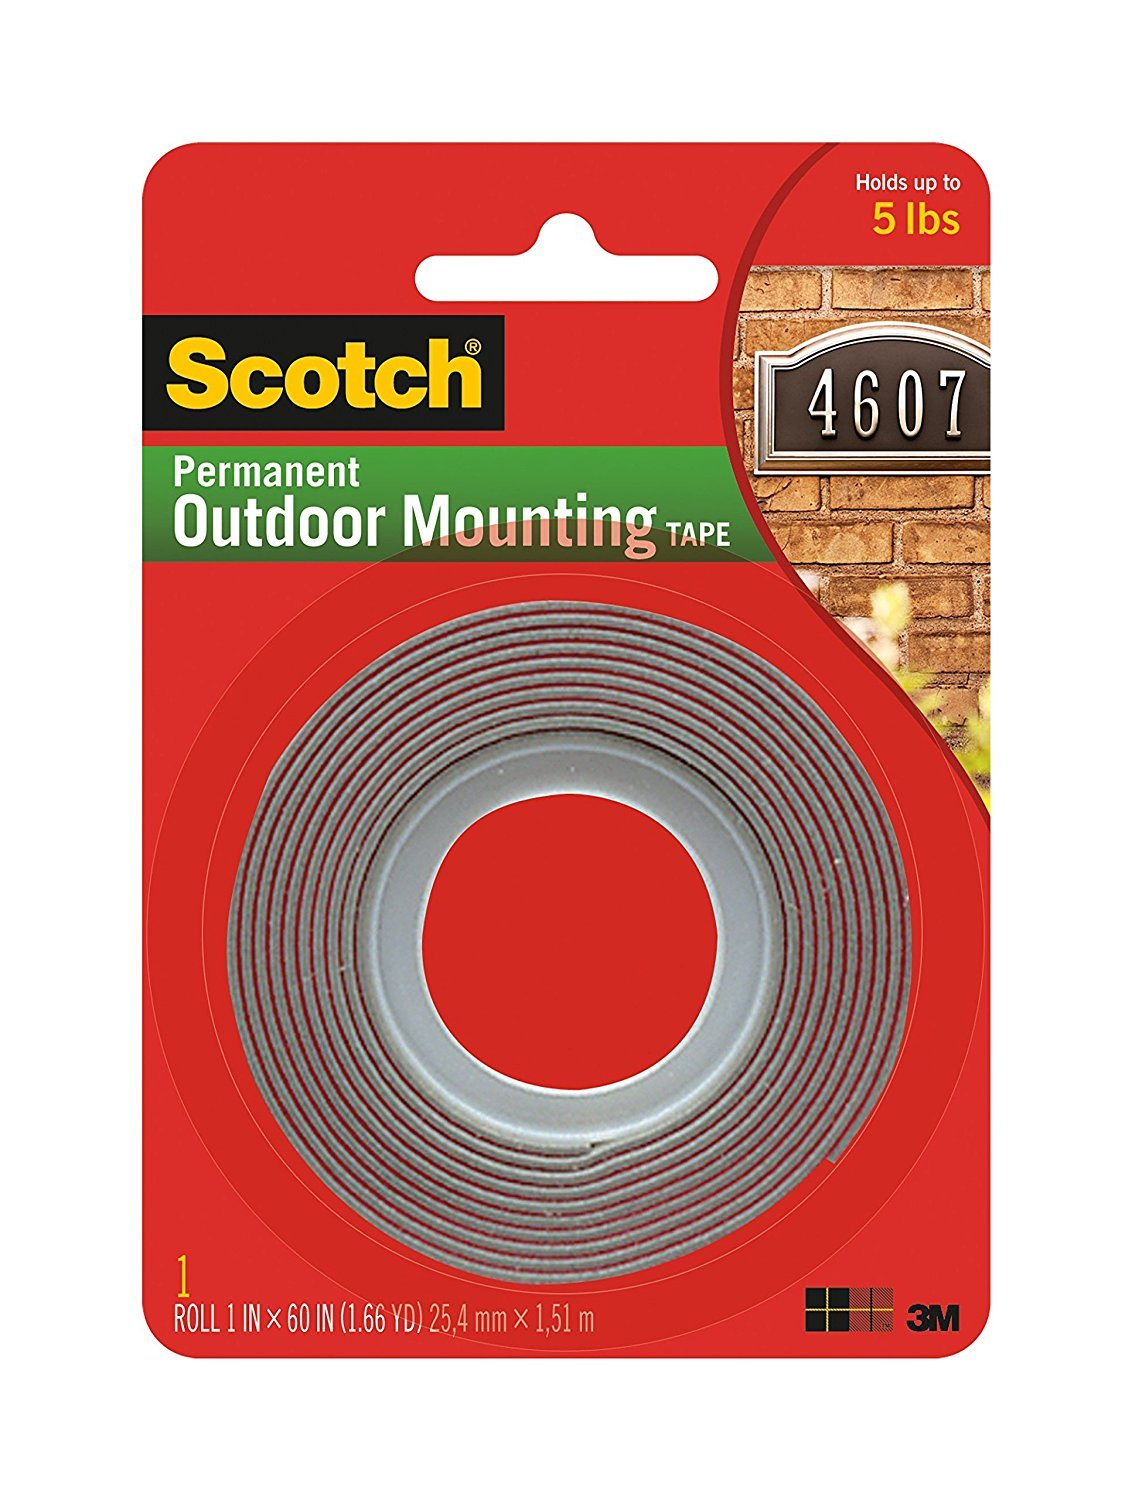 Scotch Extreme Mounting Tape, 1-Inch by 60-Inches, Black, 2-Rolls 3M 3M-01986